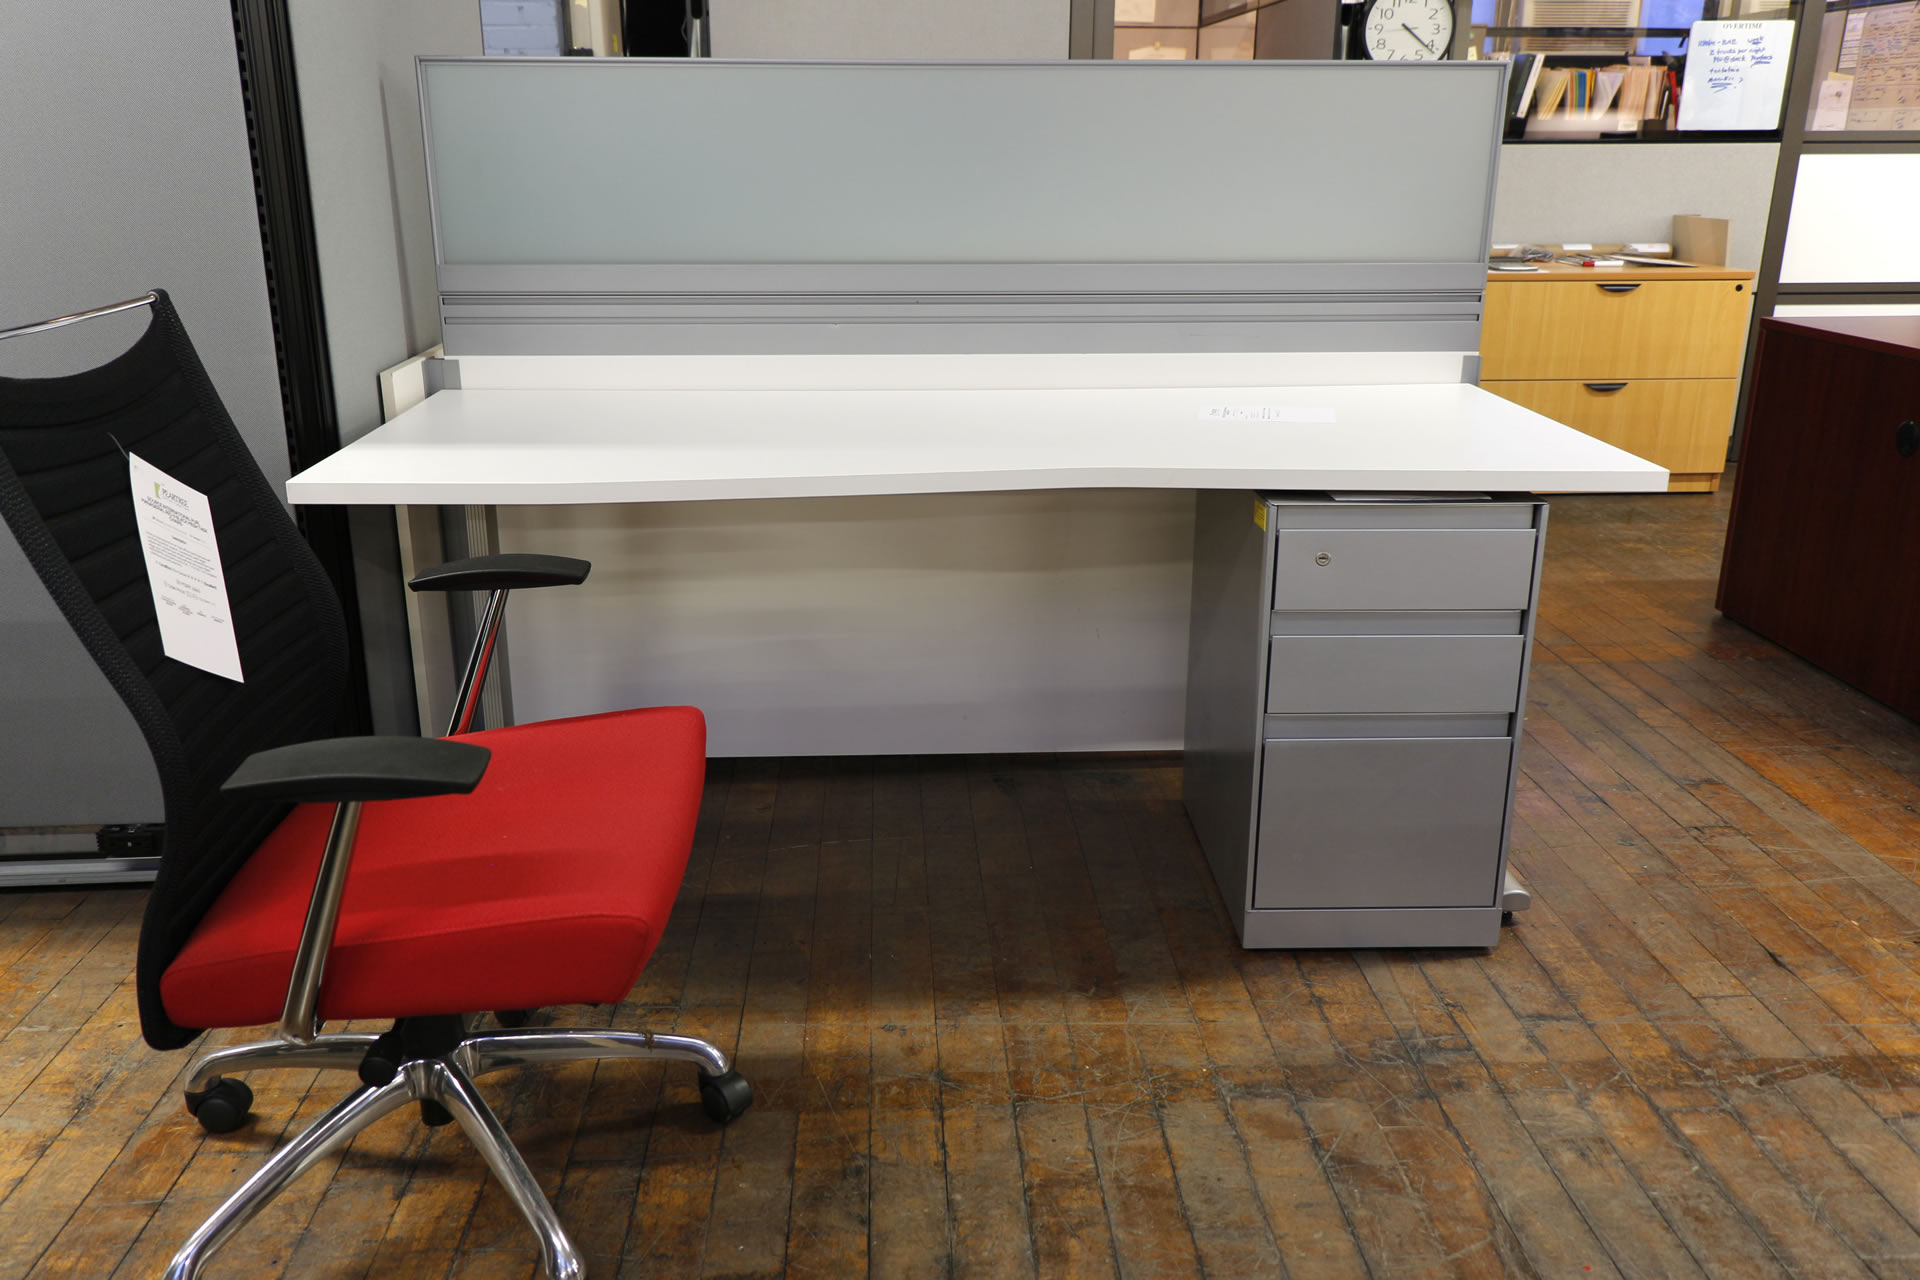 peartreeofficefurniture_peartreeofficefurniture_mg_4944.jpg